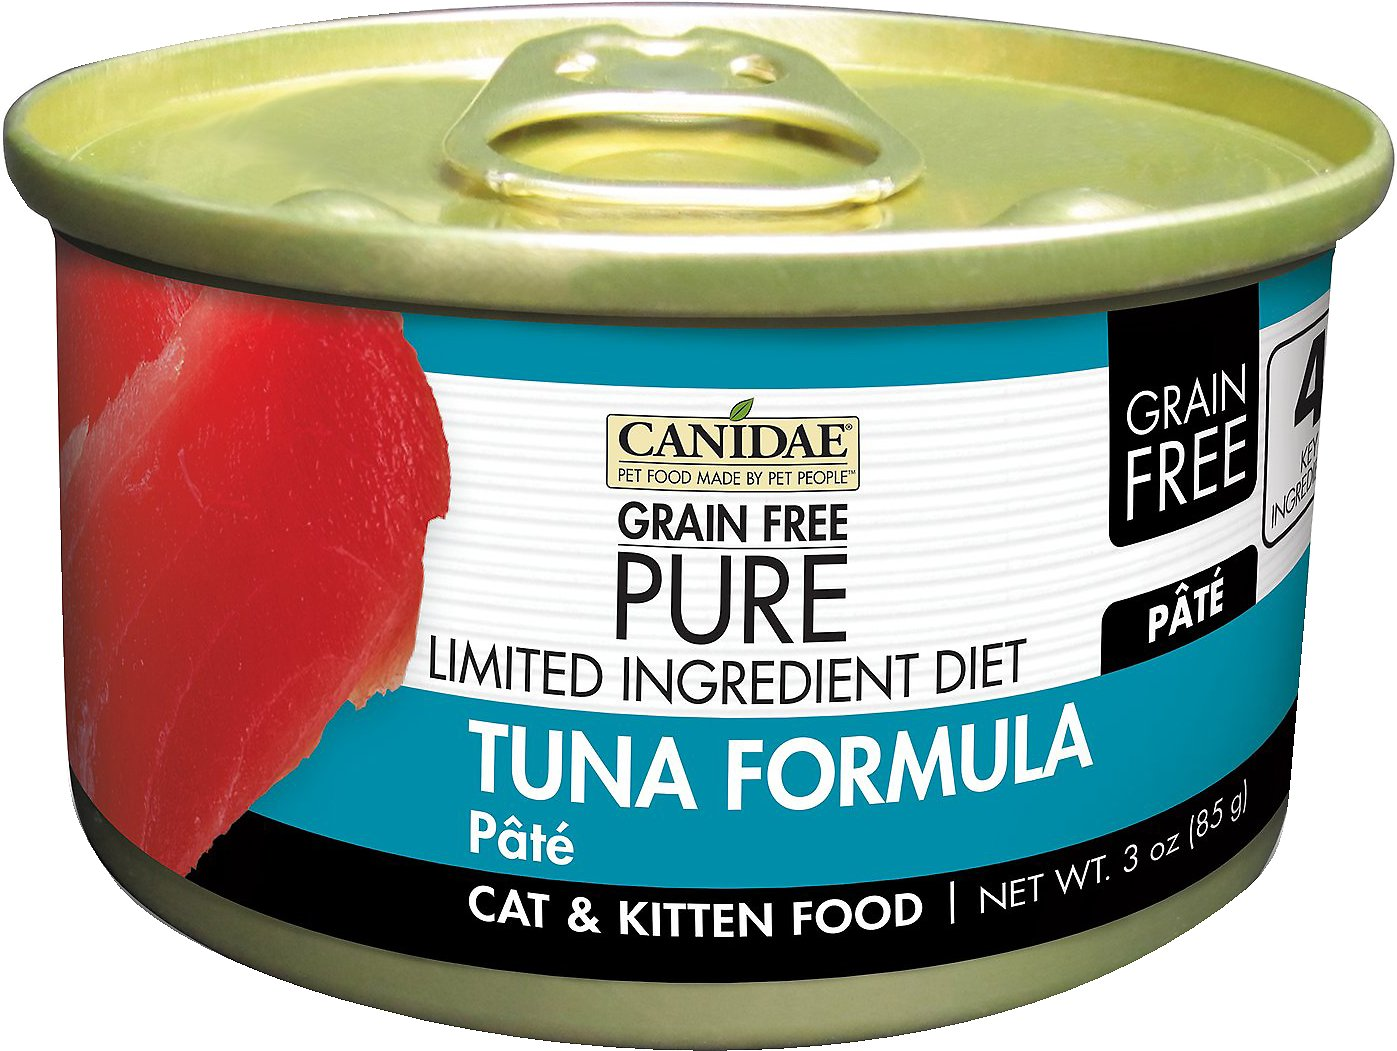 Canidae Pure Cat Food Reviews